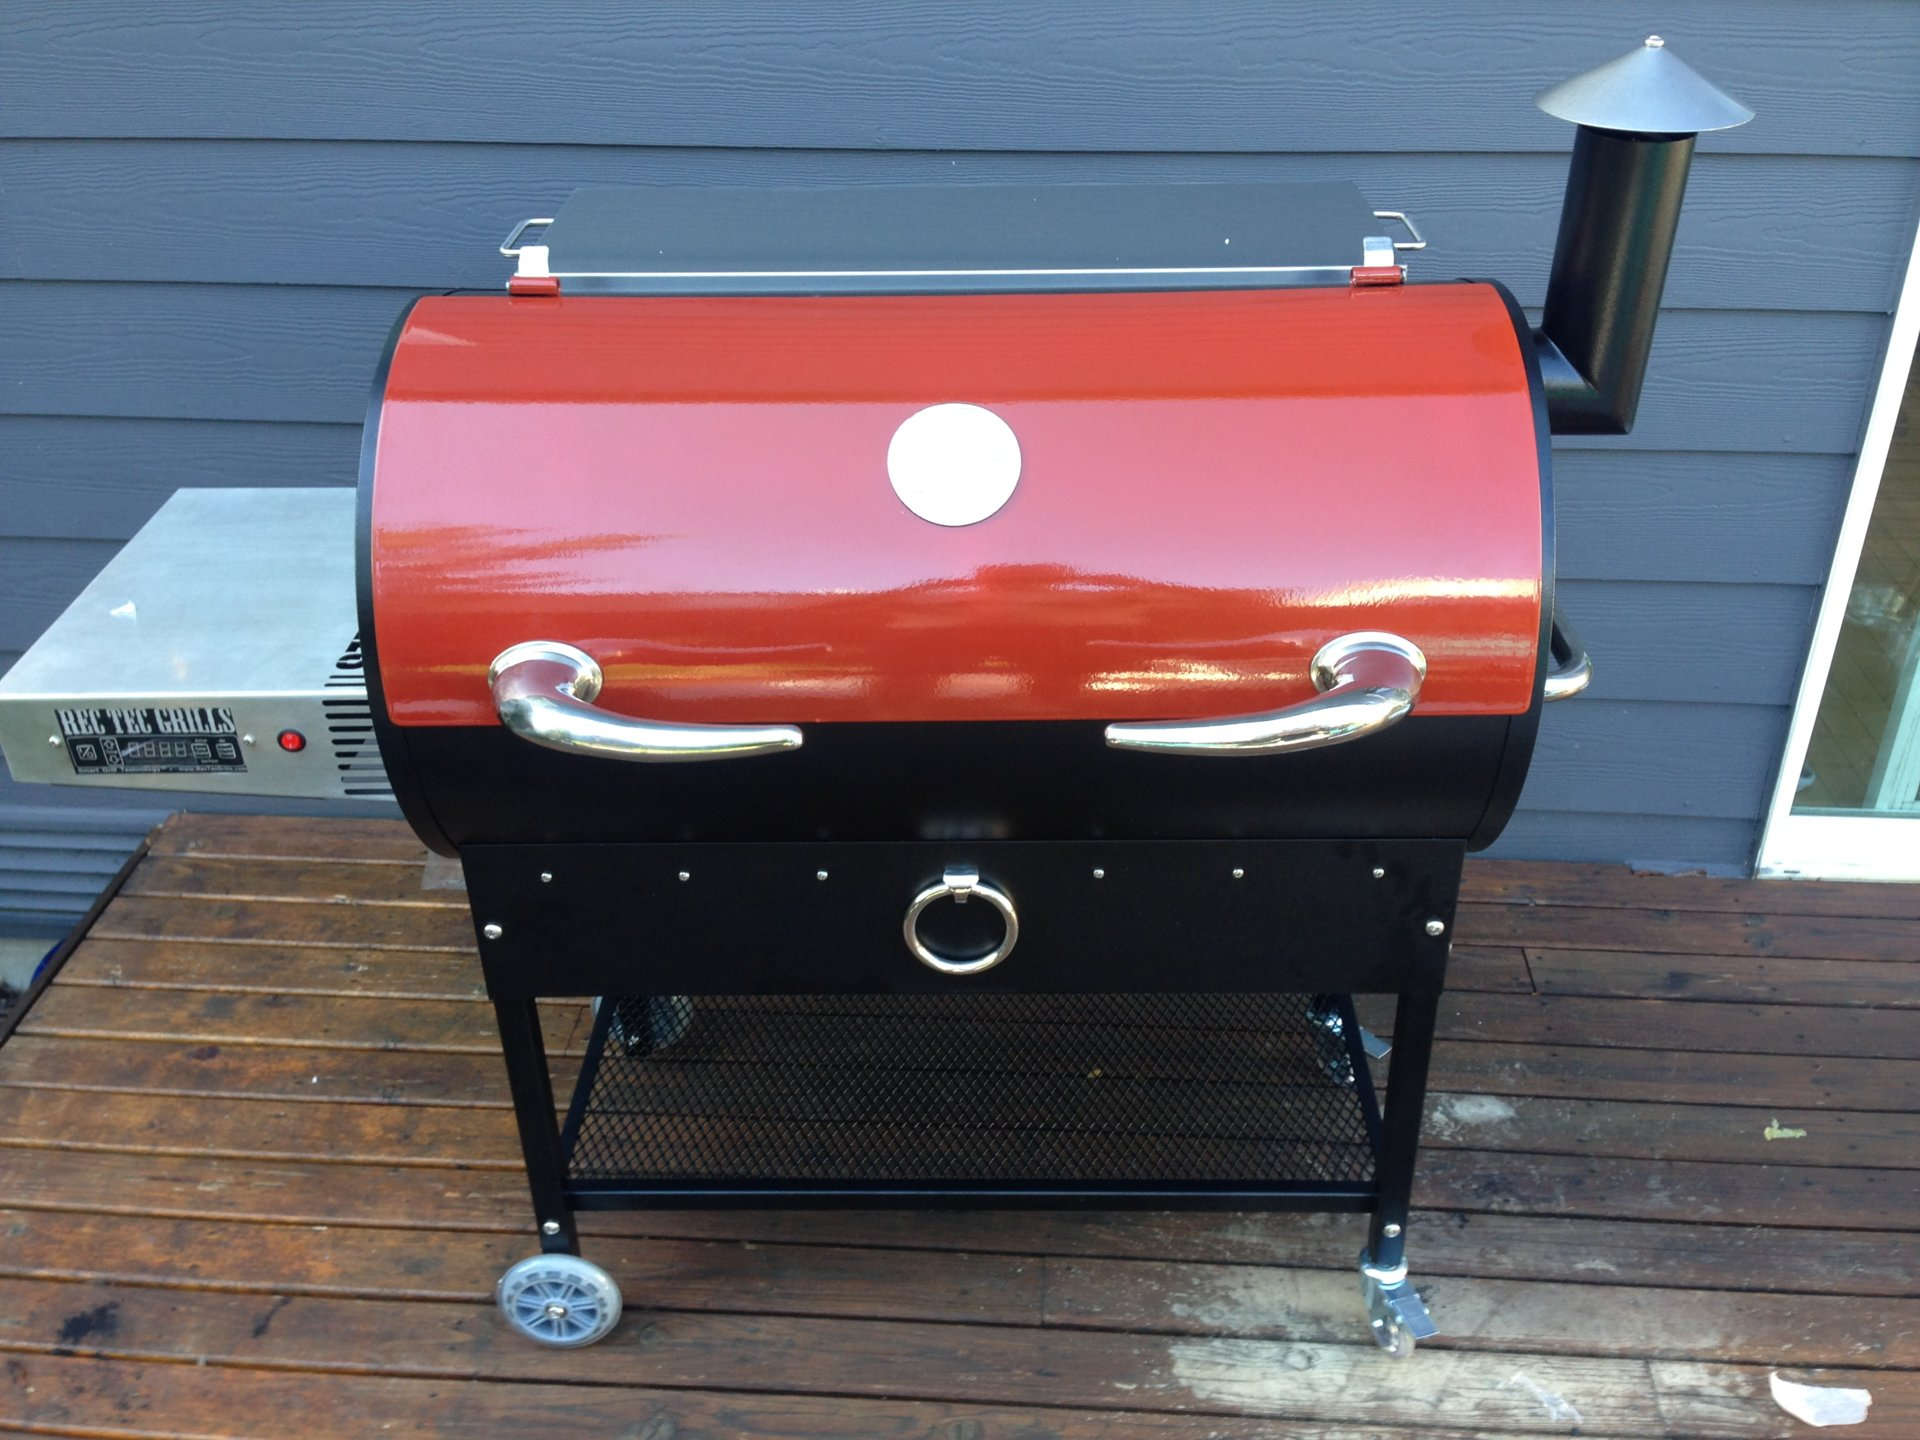 Treager Grill or Green Mountain | Bloodydecks